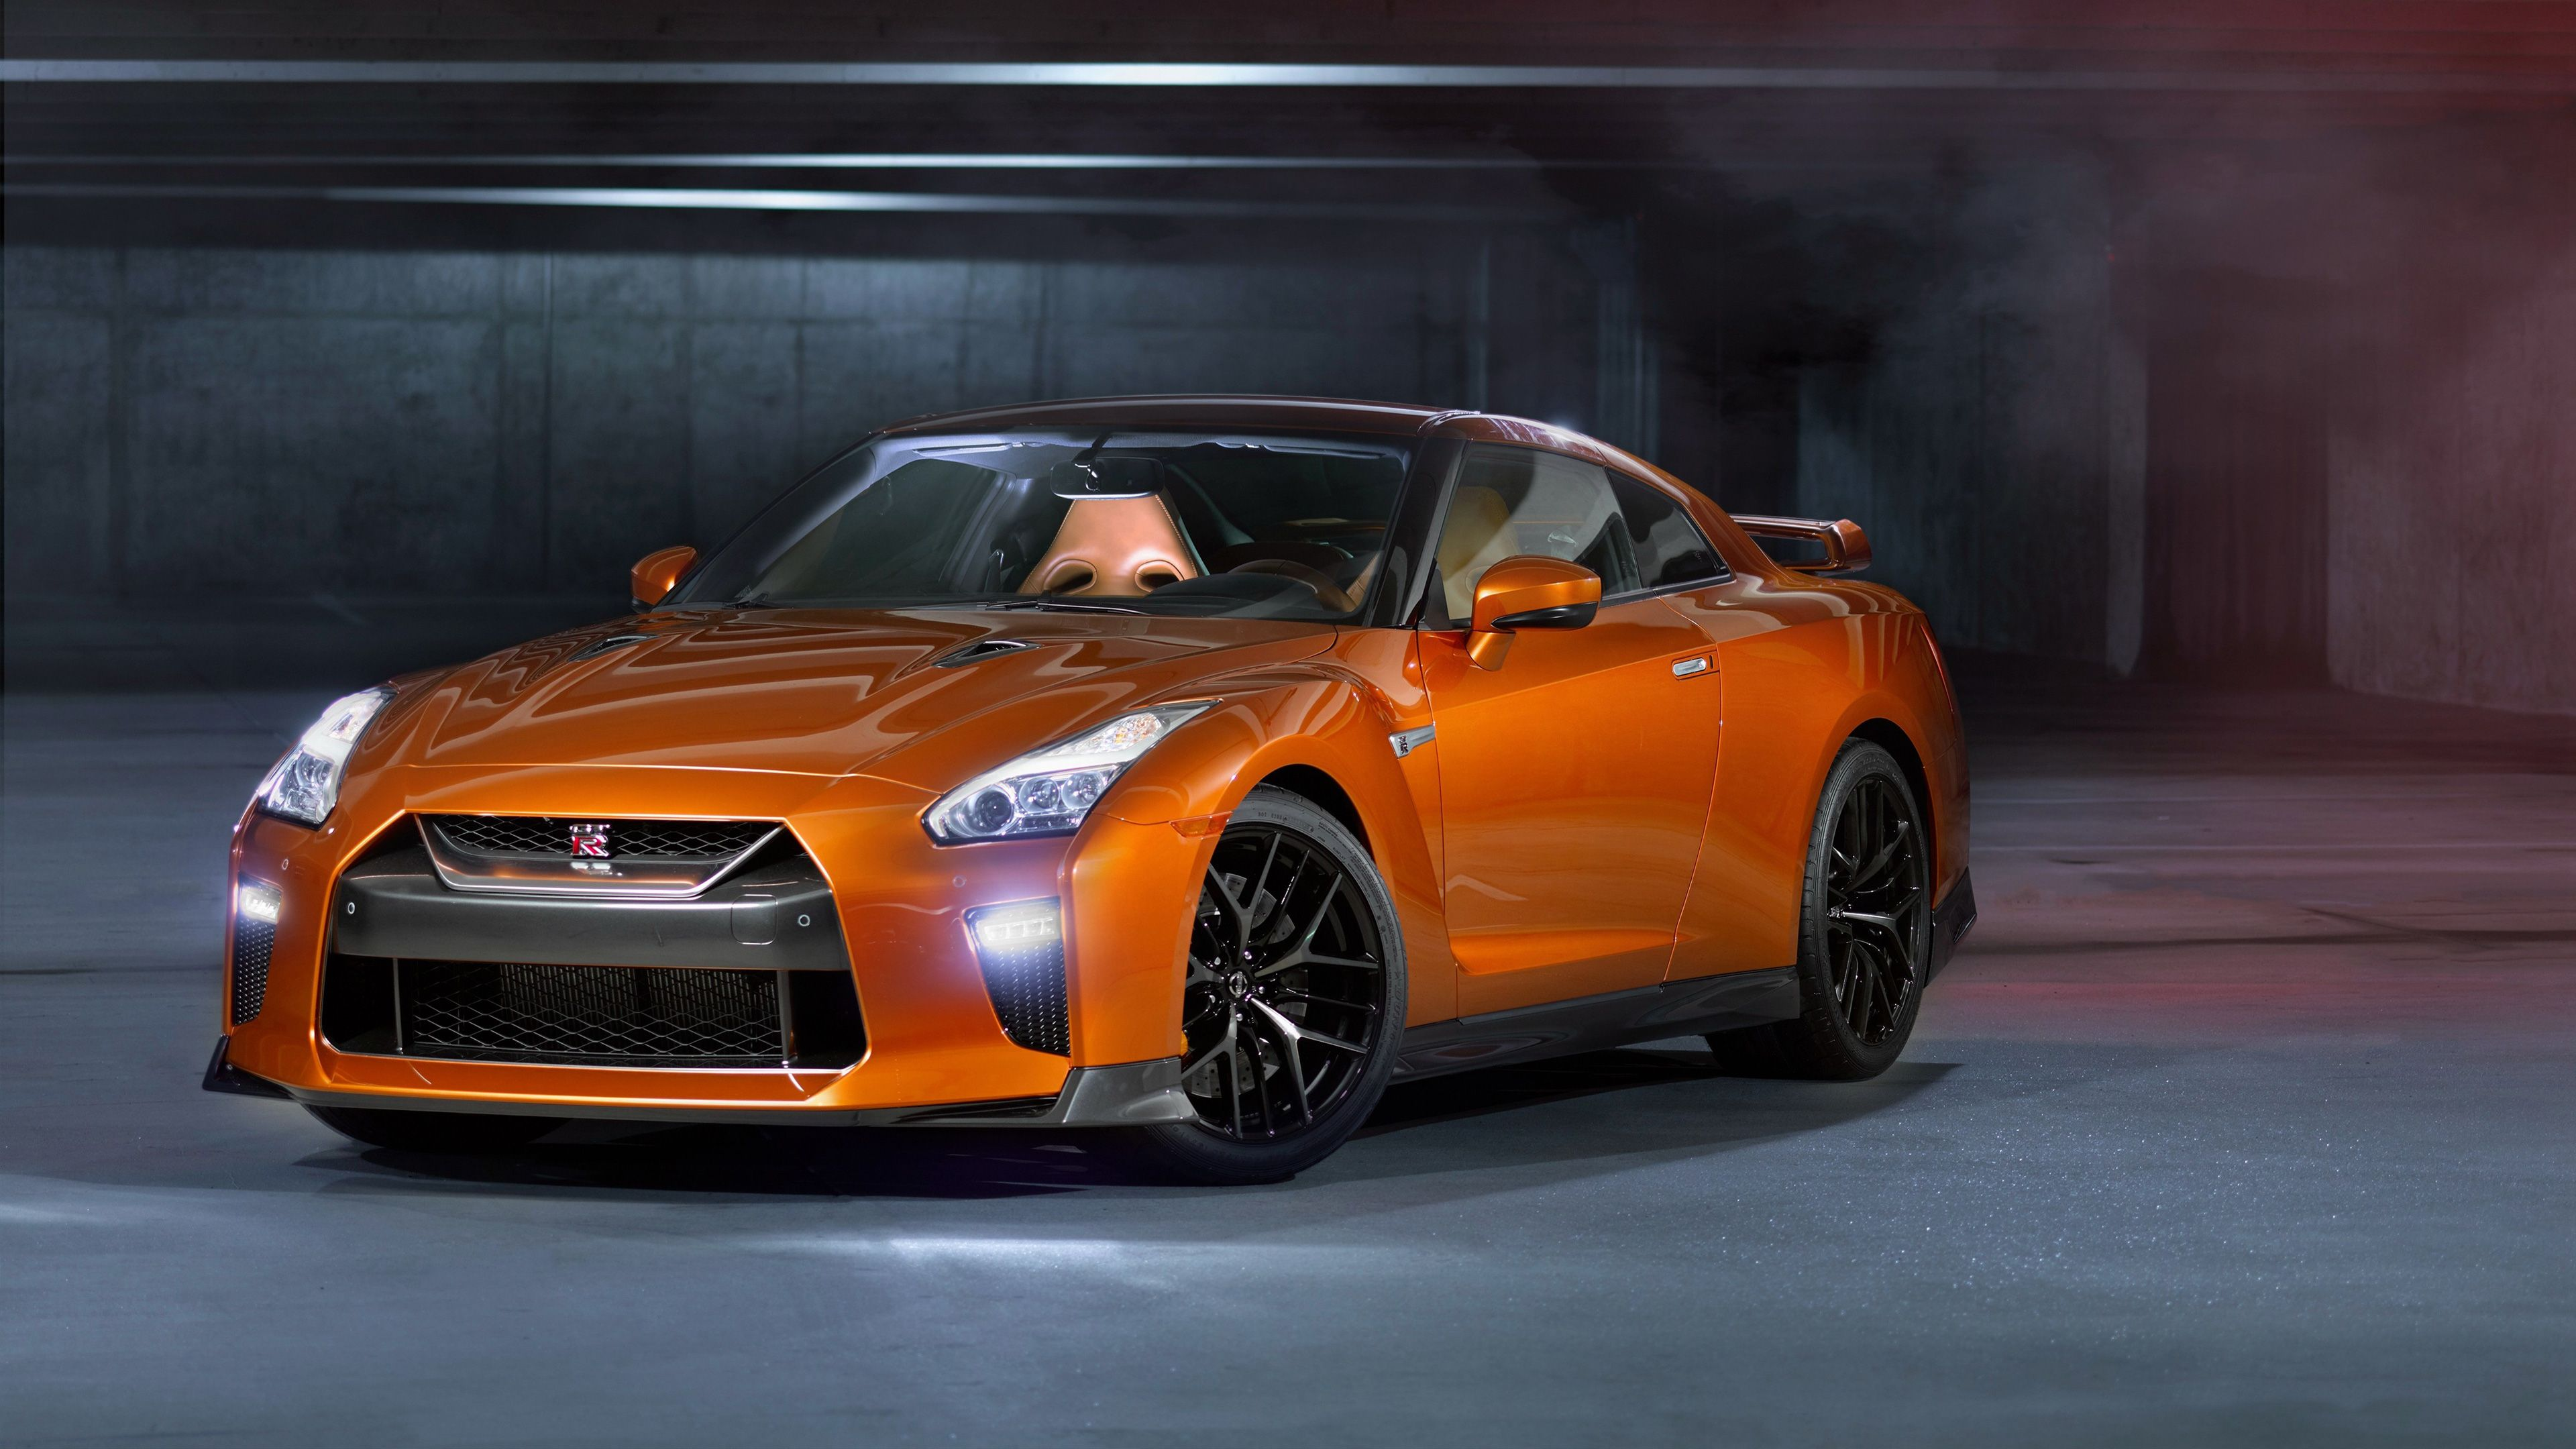 Merveilleux 2017 Nissan GTR Can Be The Nice Choice, Especially For Those Who Want To  Have The Kind Of Stylish Sport Car In Their Home.